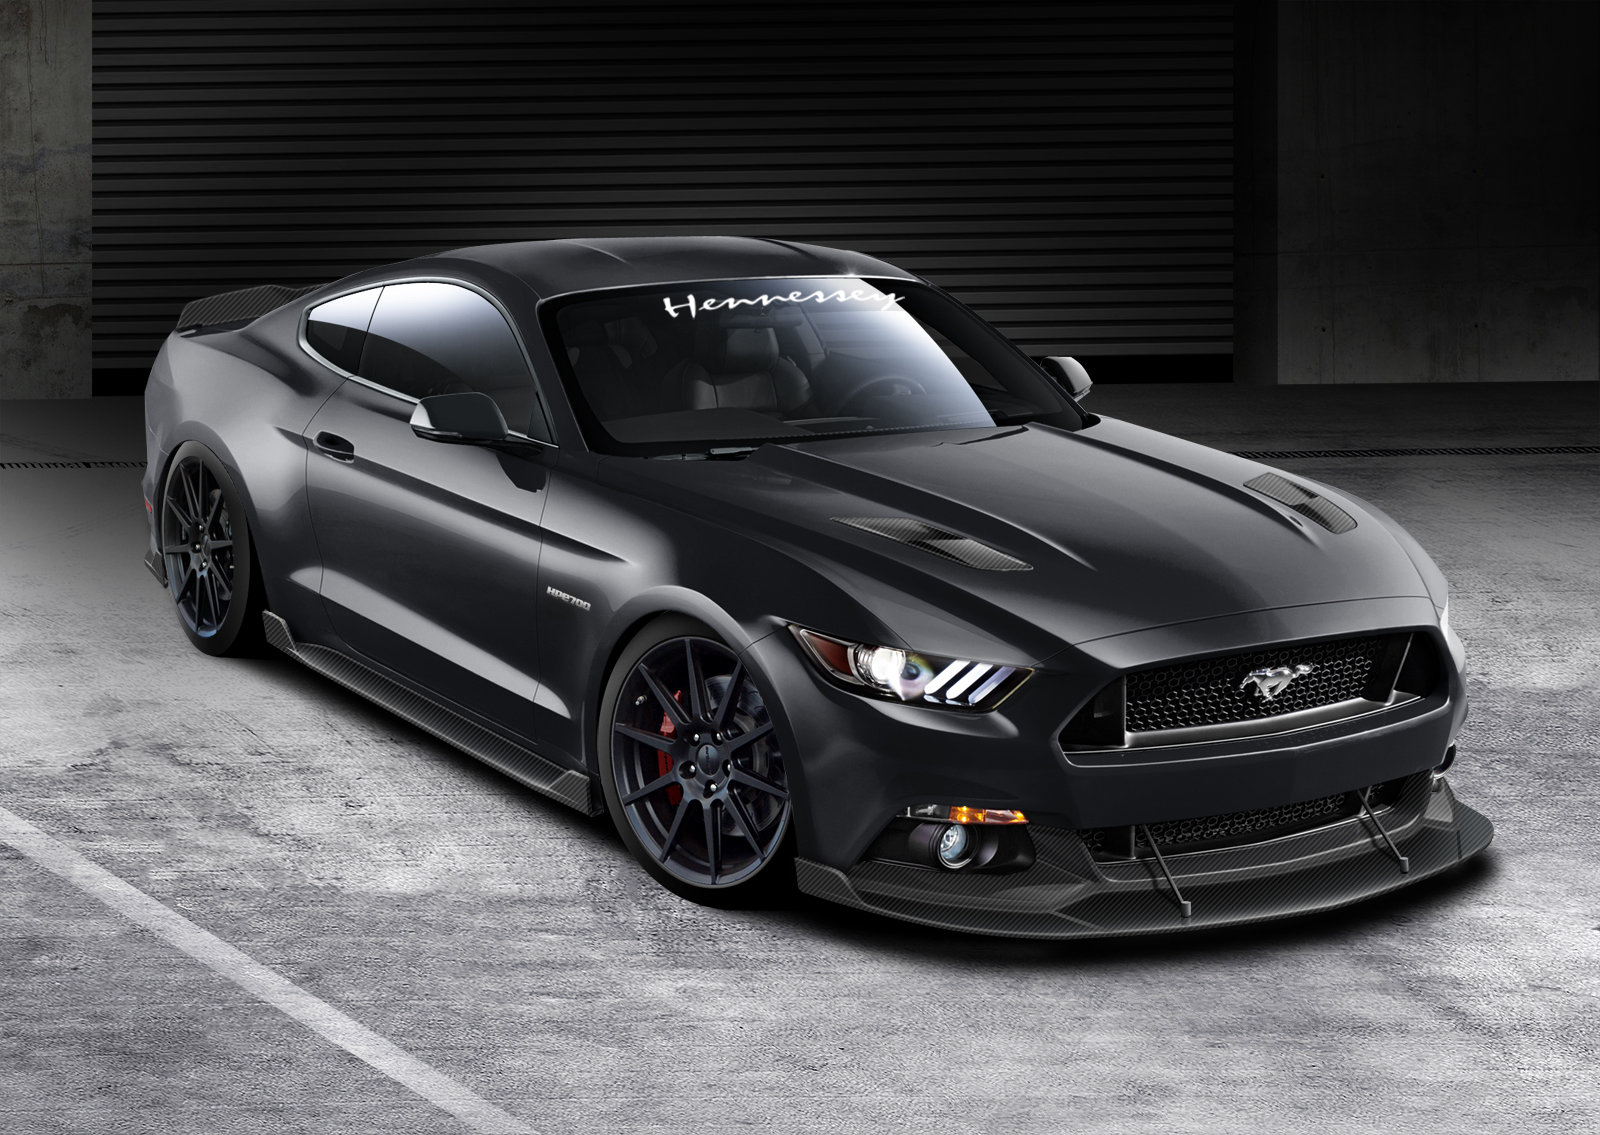 Hennessey 2015 Ford Mustang HPE600 & HPE700 Upgrades Priced